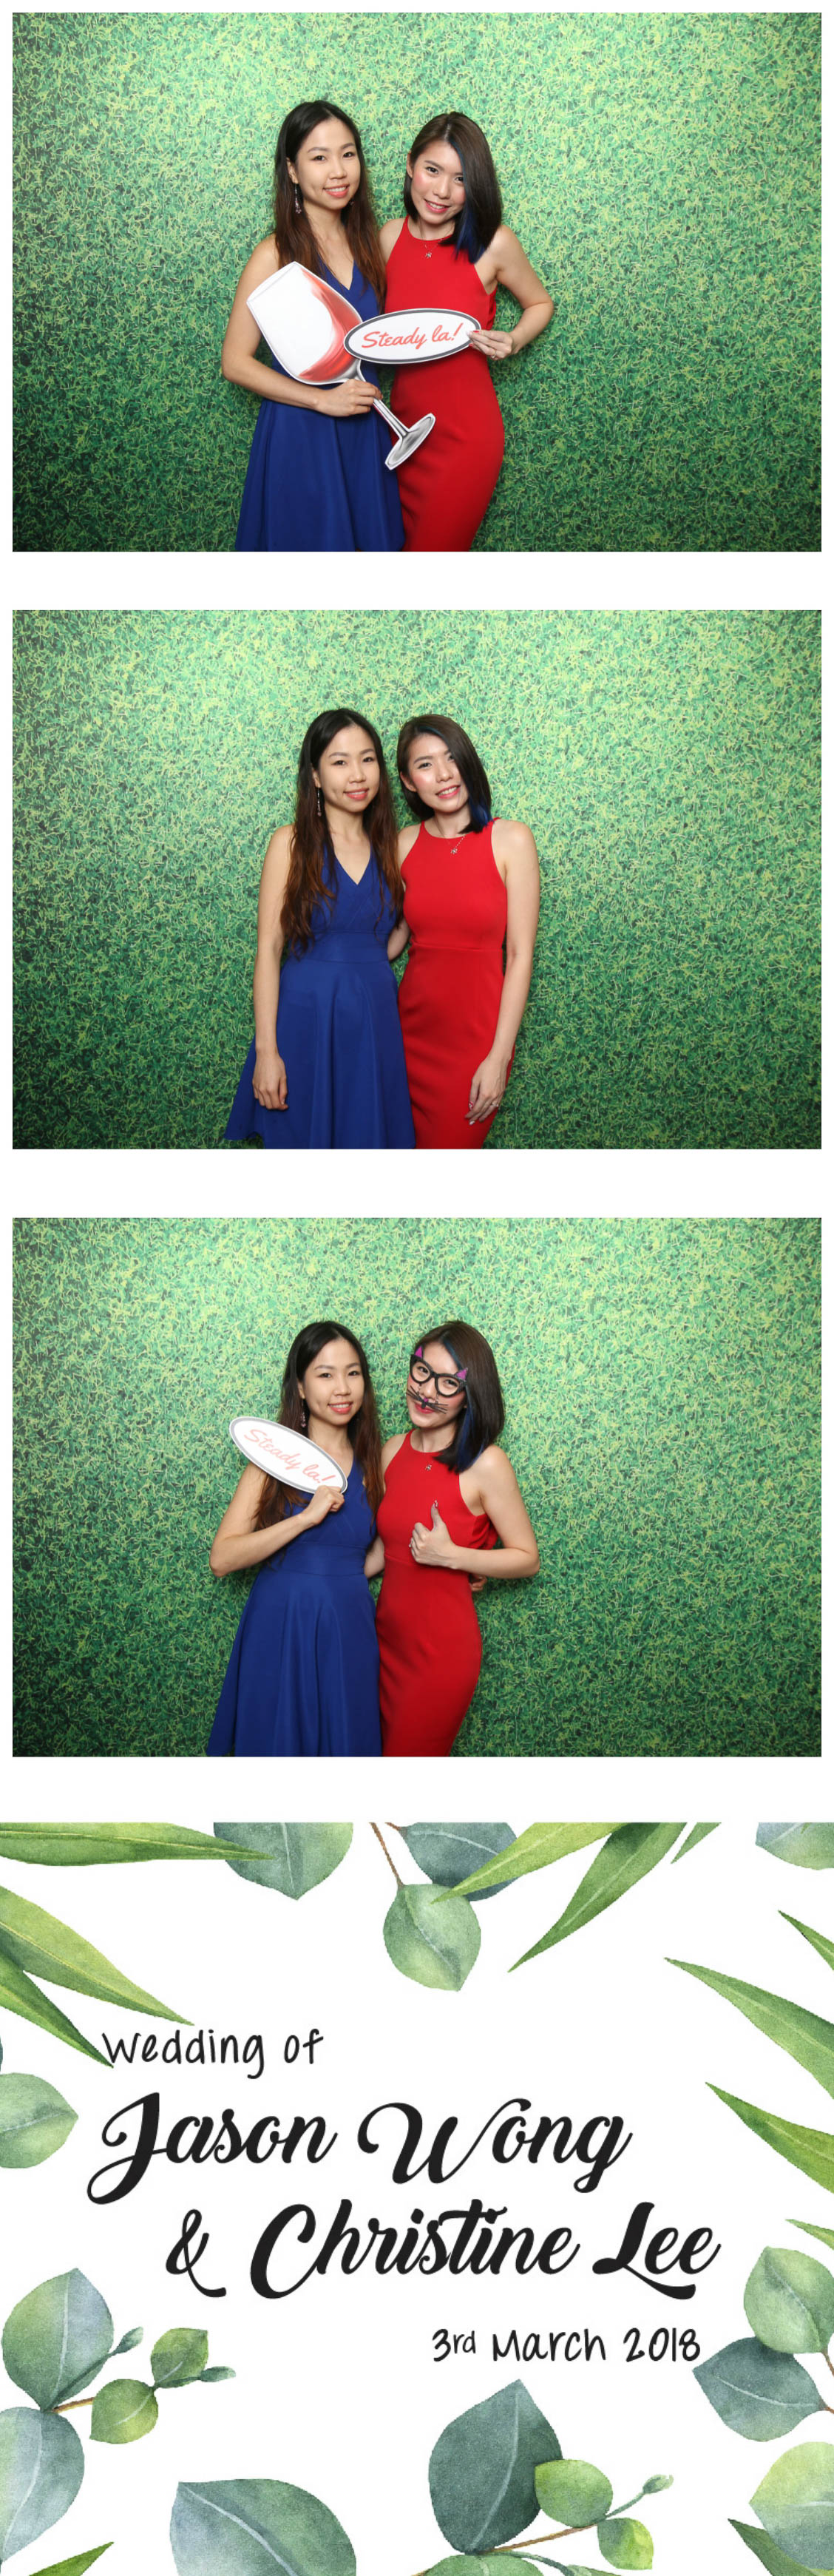 Photobooth 0302-33